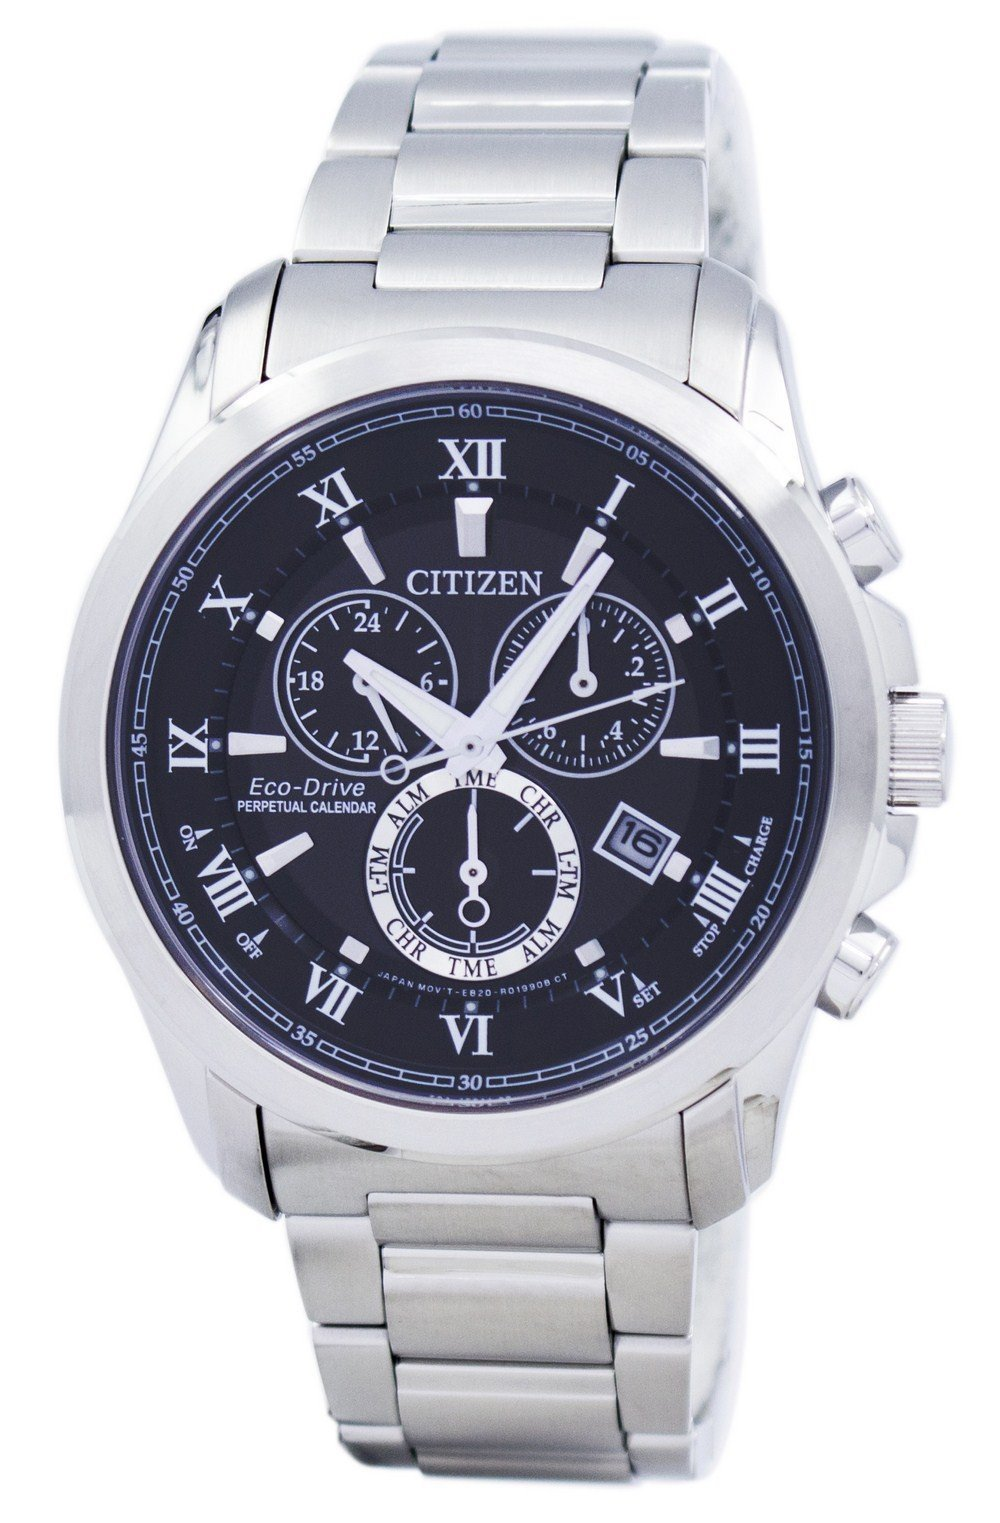 Citizen Eco-Drive Chronograph Perpetual Calendar Alarm BL5540-53E Men's Watch